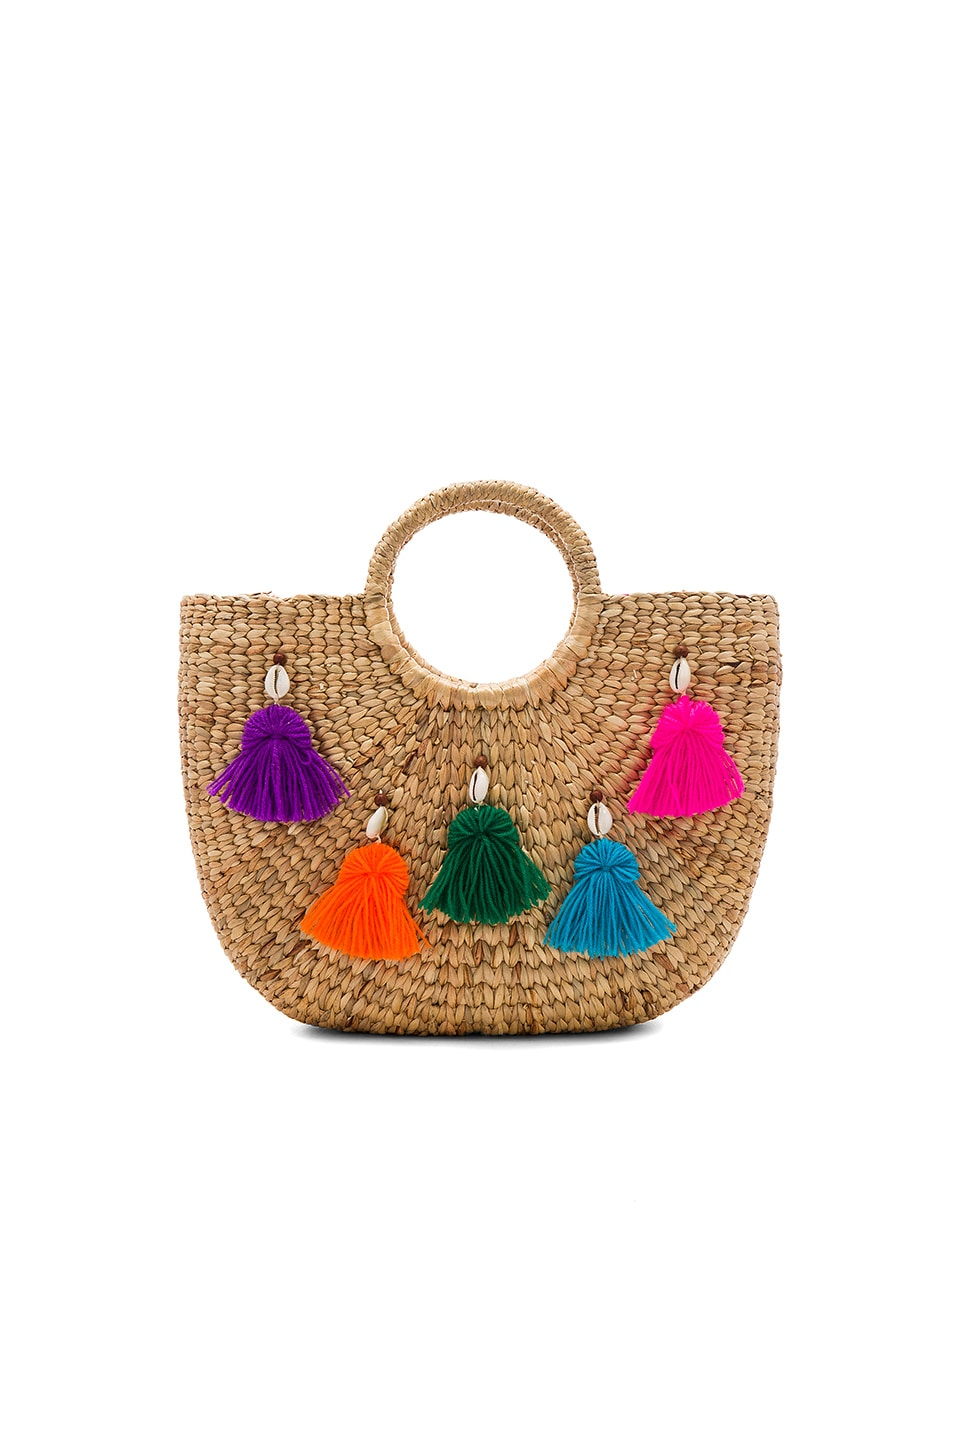 JADEtribe Mini Tassel Small Basket in Multi